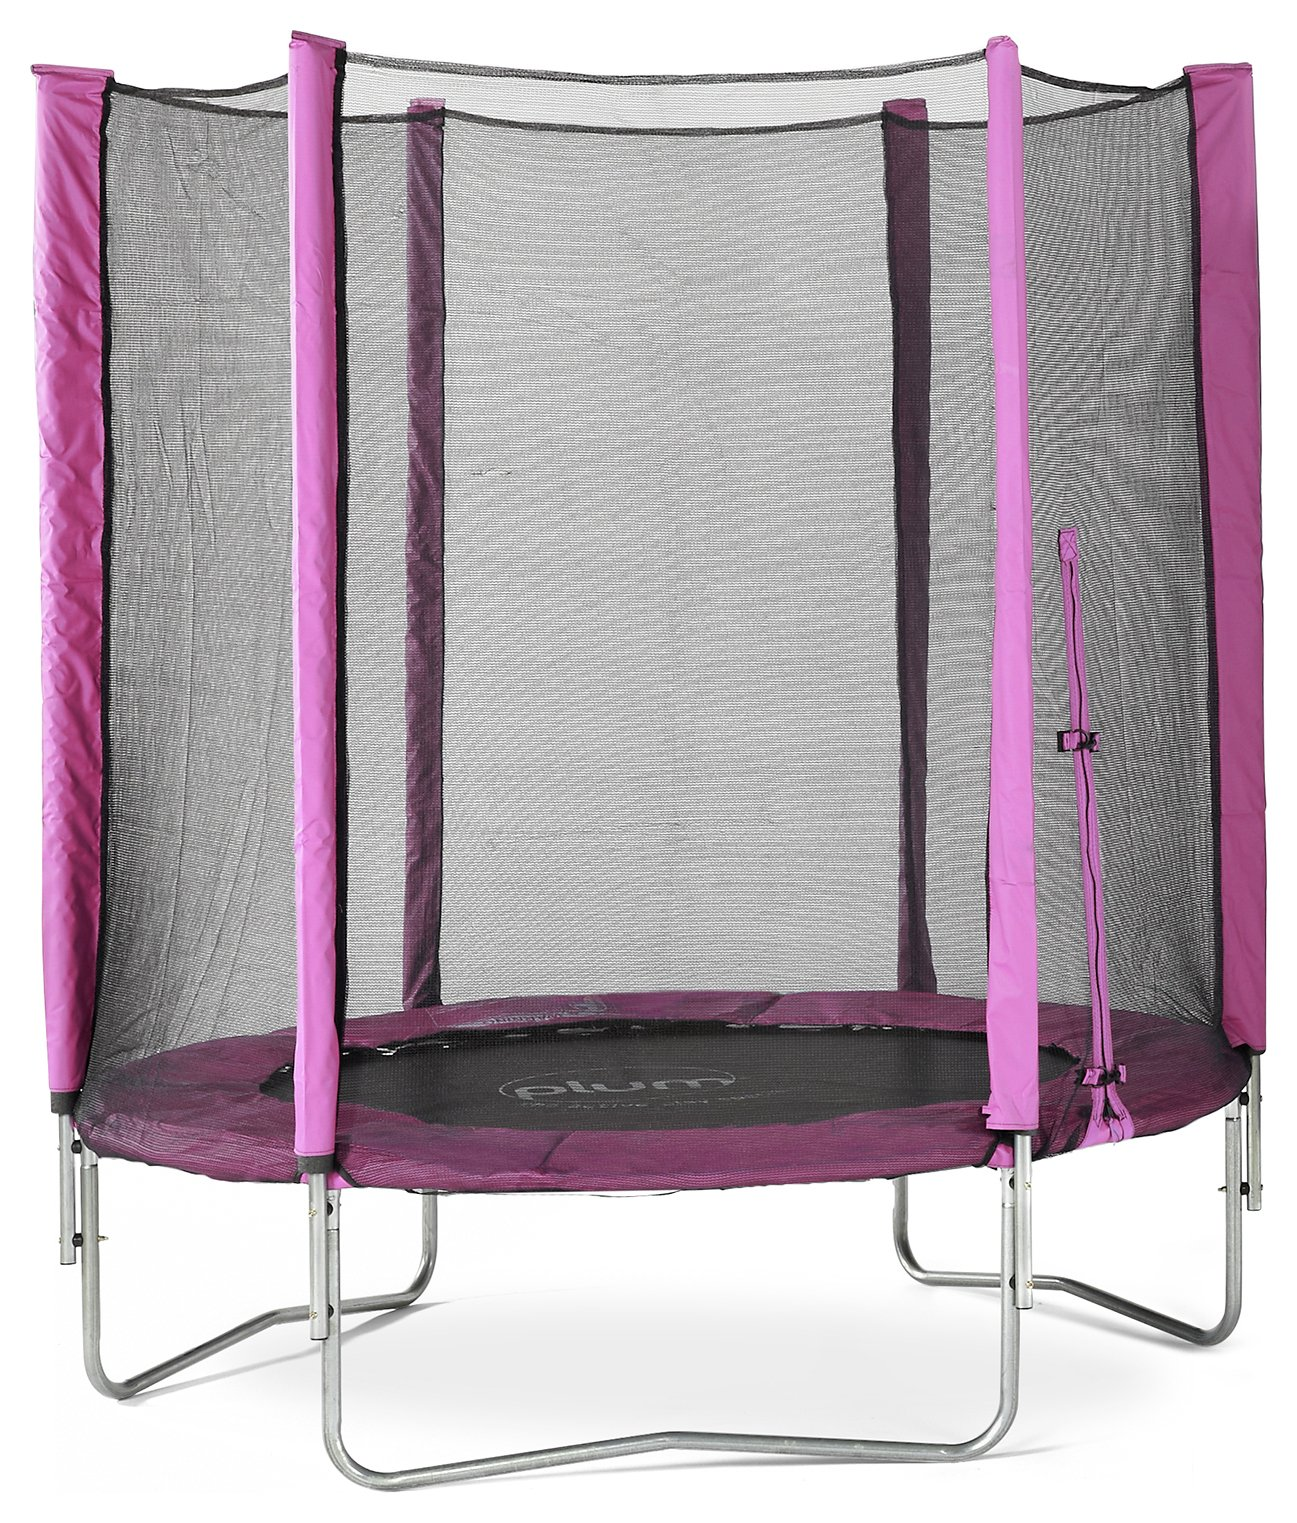 Plum - 6ft - Trampoline and Enclosure Pink